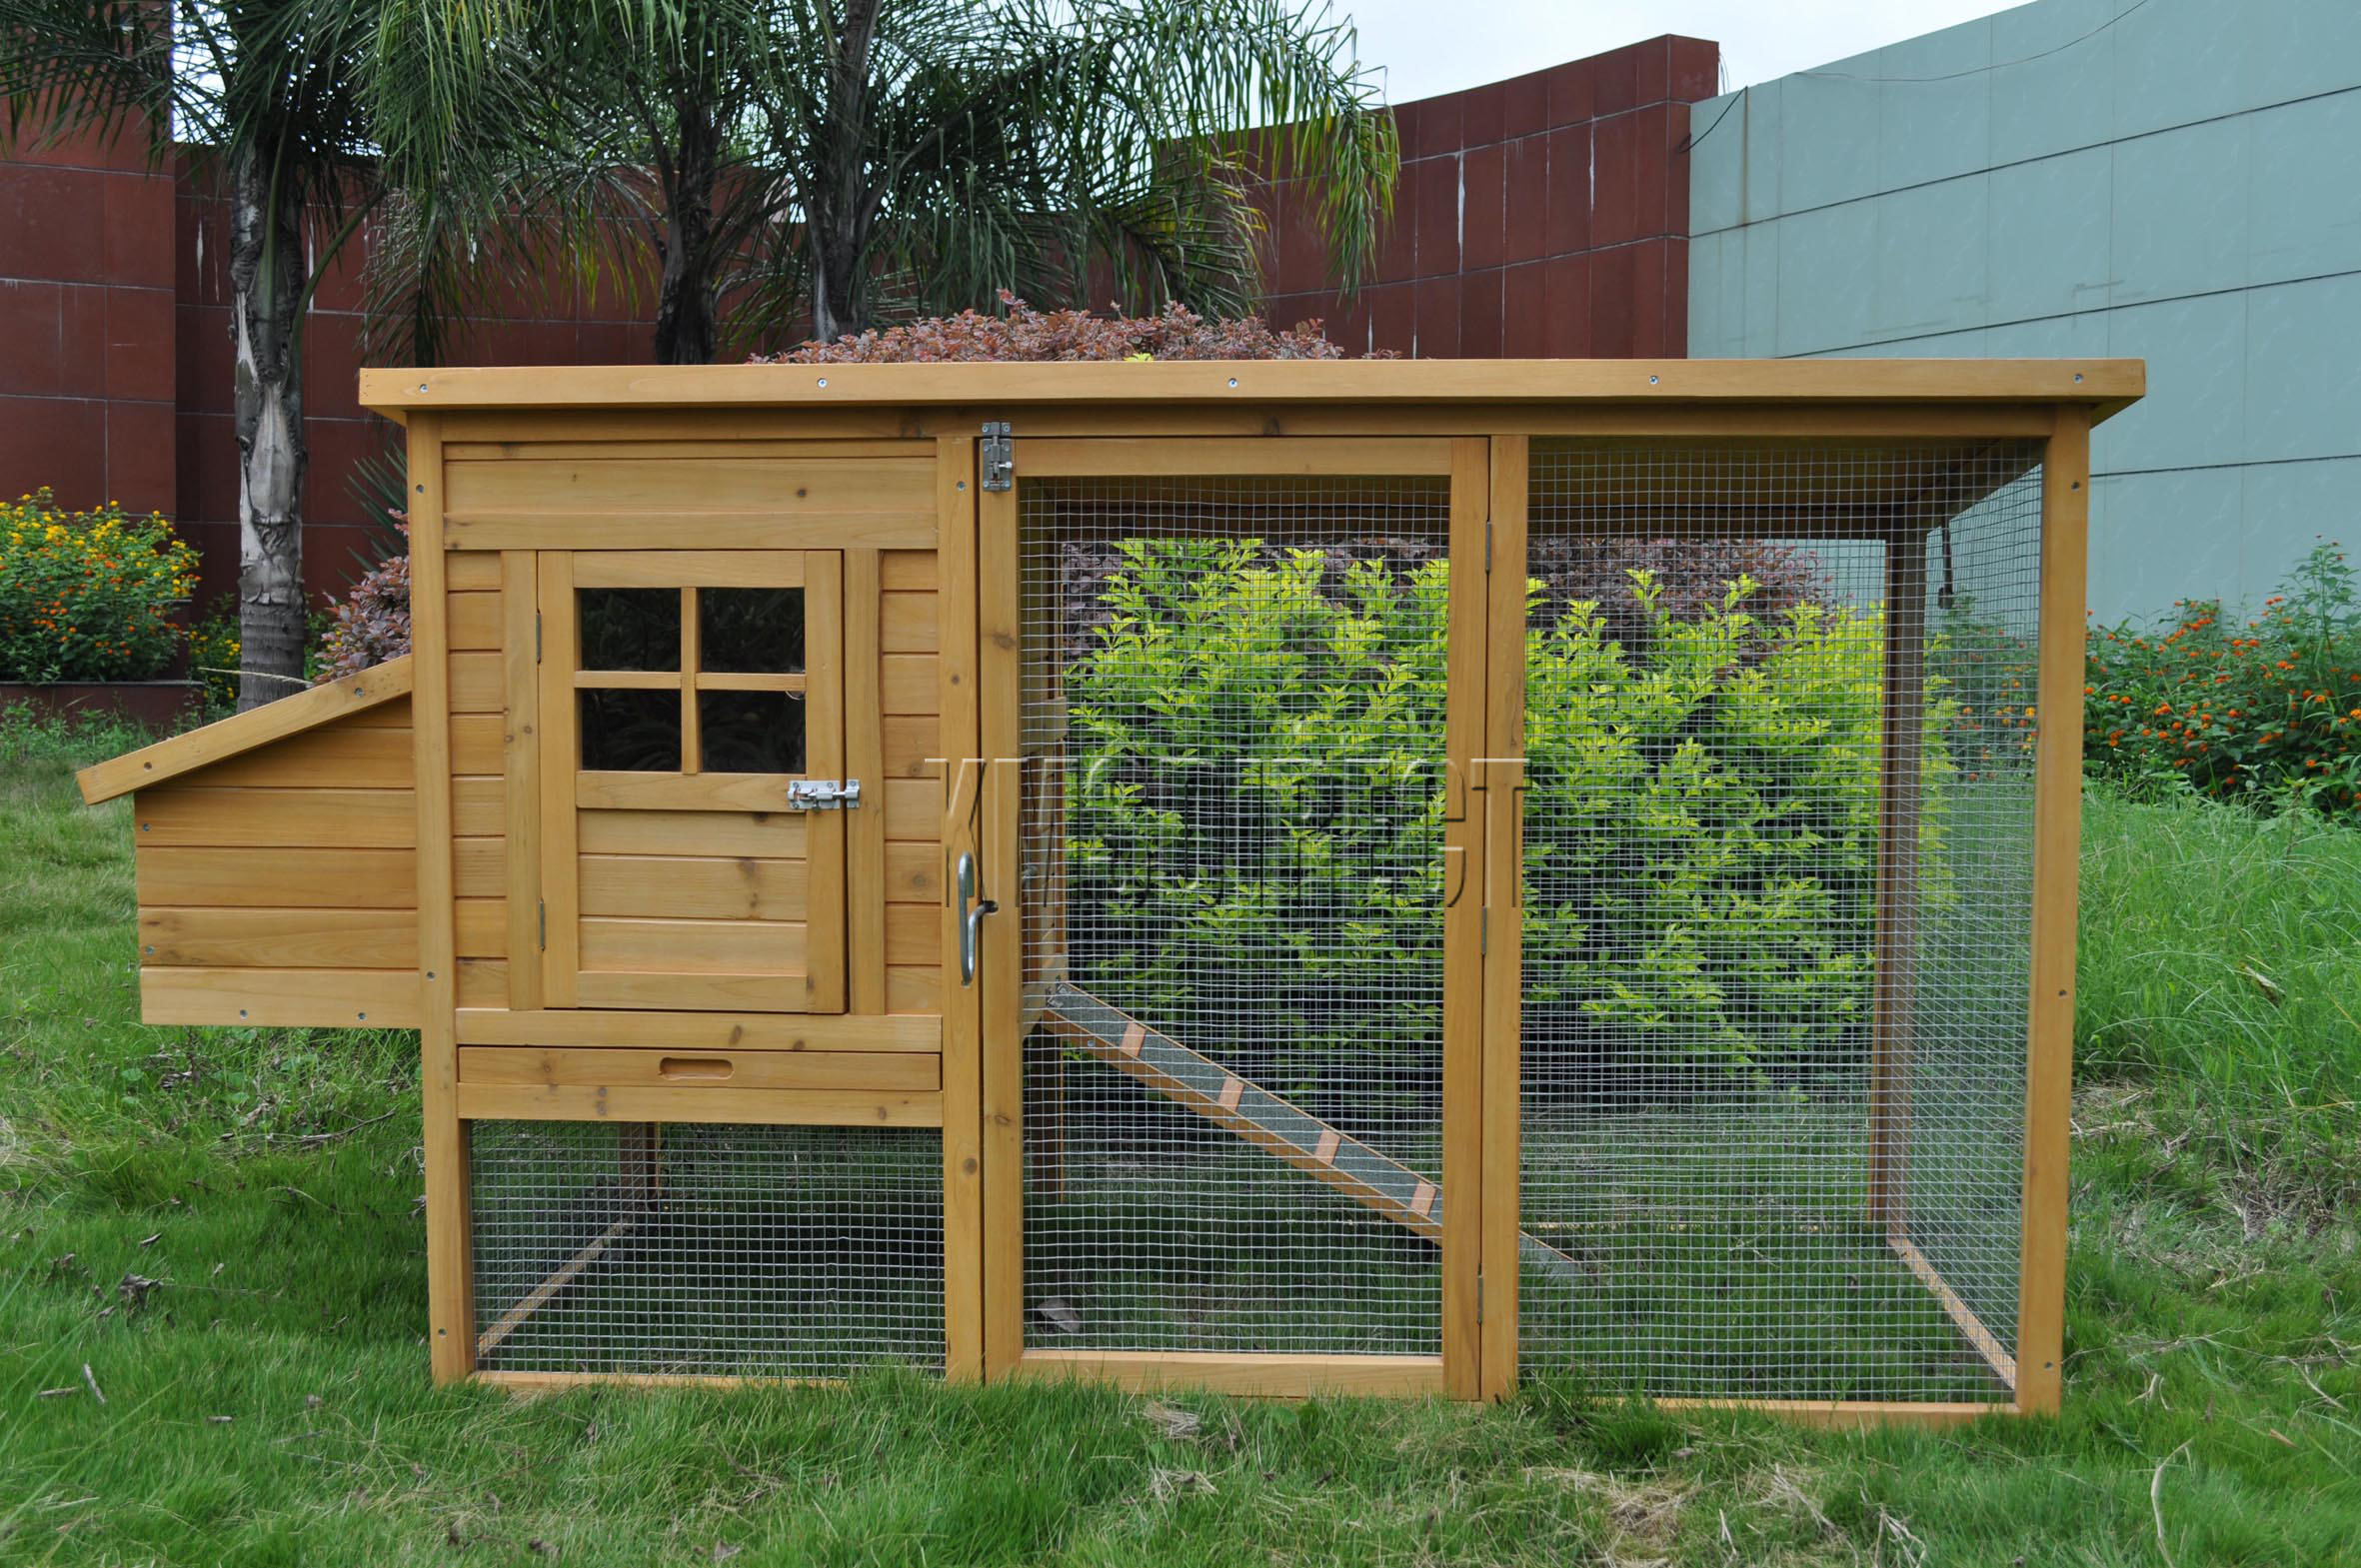 Wooden Chicken Coop Poultry House Hen Ark amp Run : chickencoopDXH011KMSWM08 from www.ebay.co.uk size 2362 x 1569 jpeg 784kB